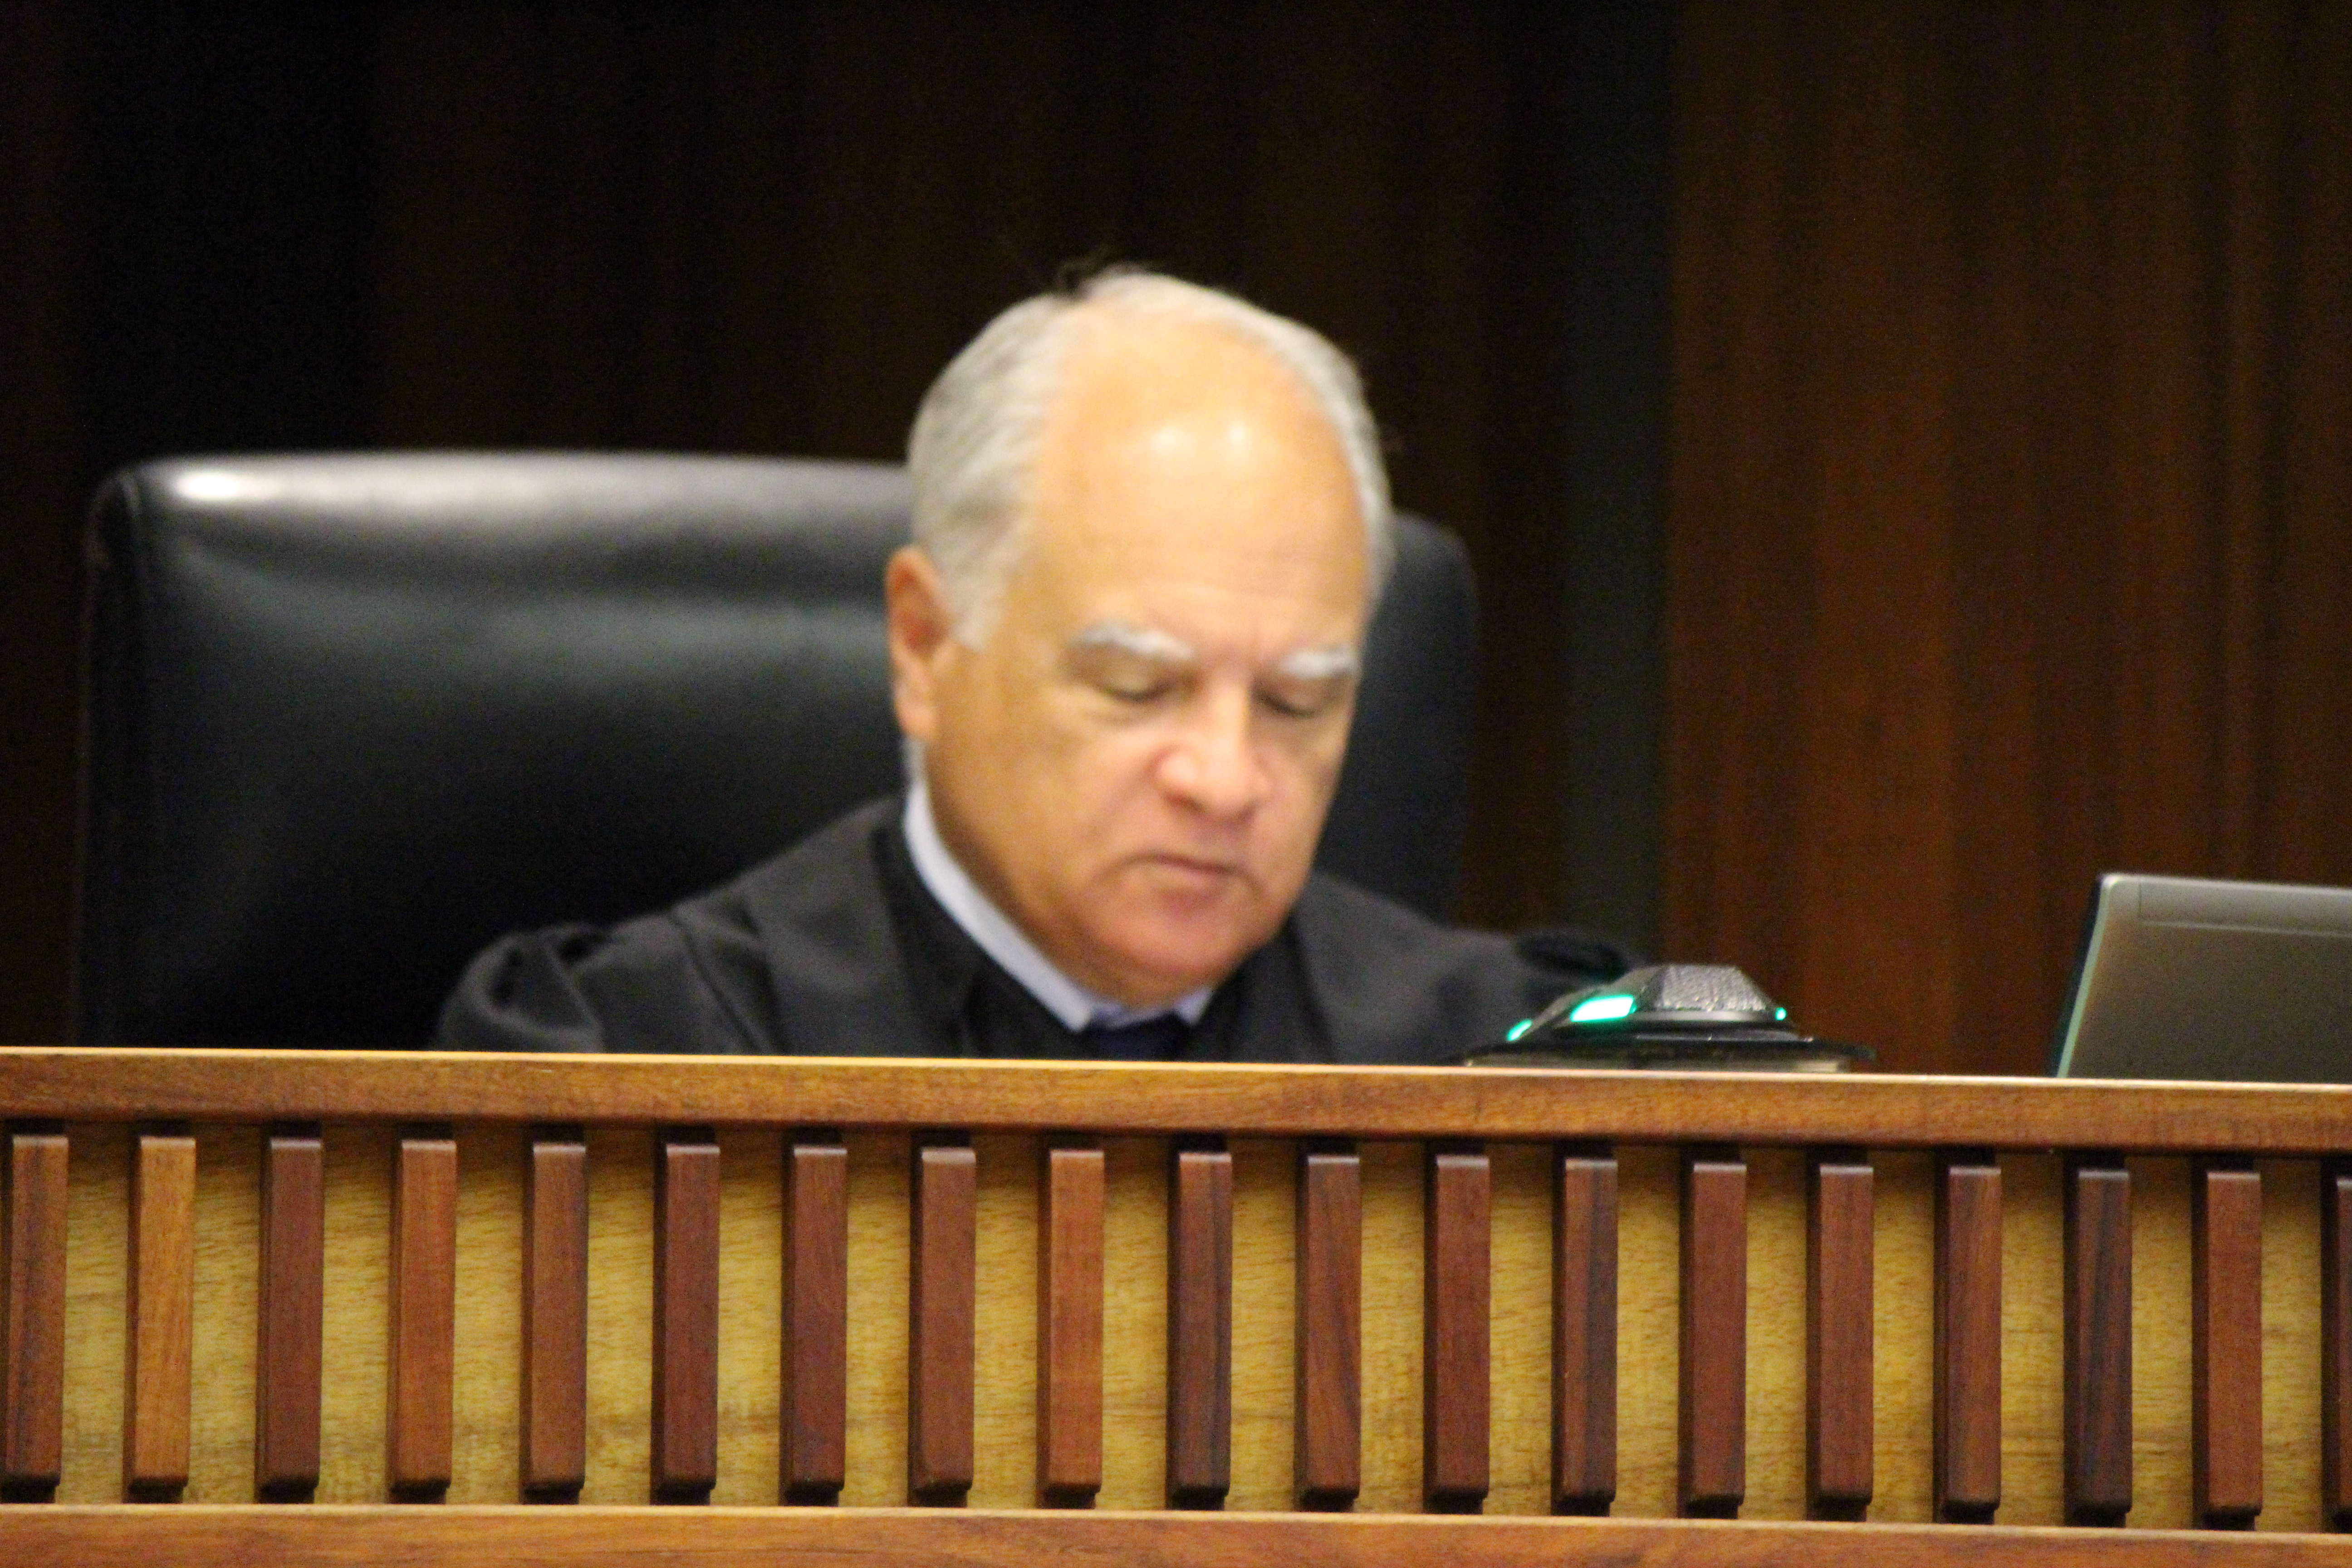 Maui Chief Judge Joseph Cardoza. PC 11.29.16 by Wendy Osher.